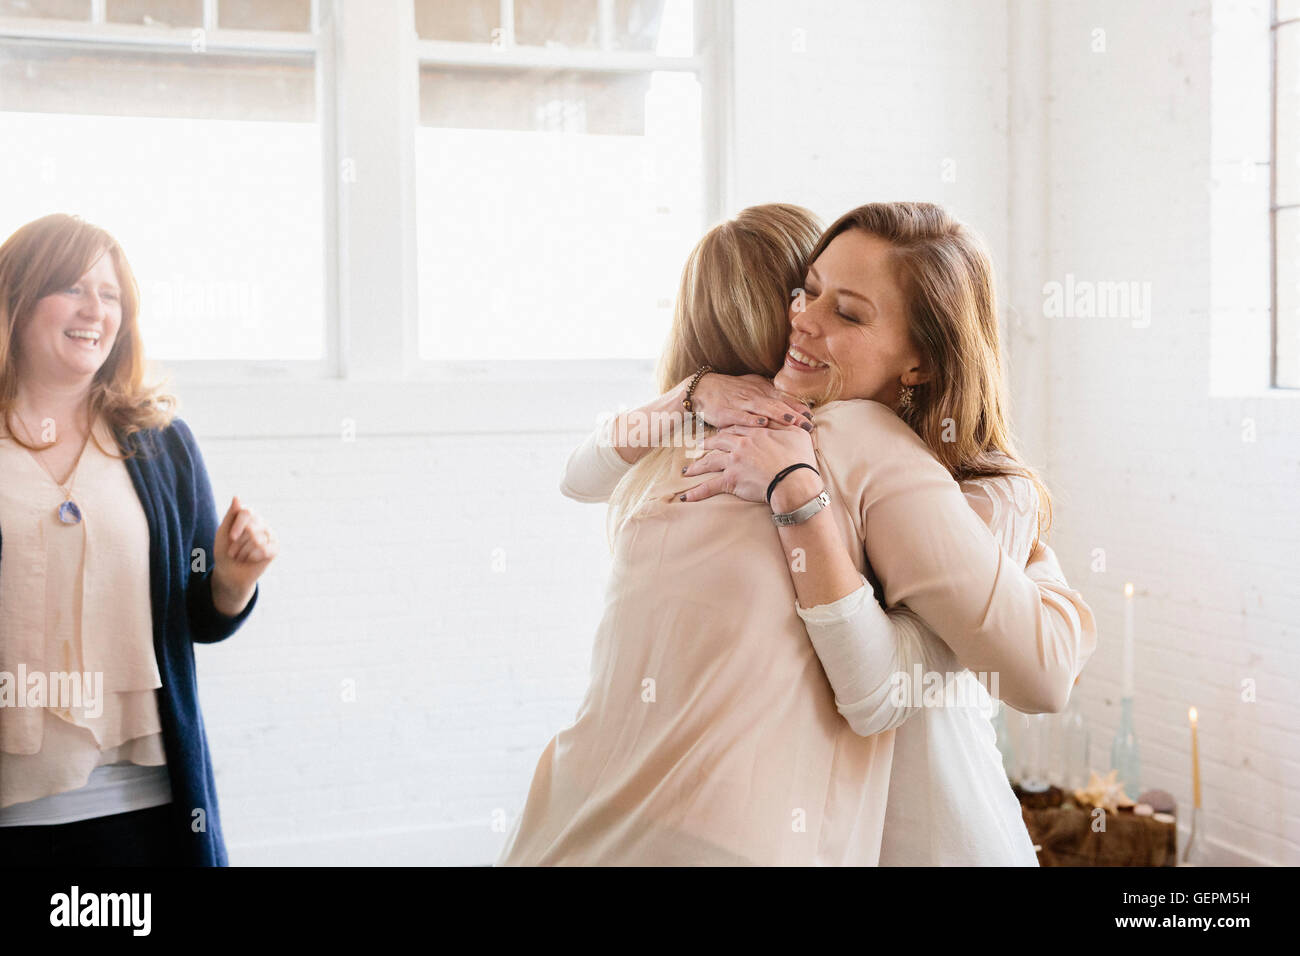 Two woman hugging at a party. - Stock Image